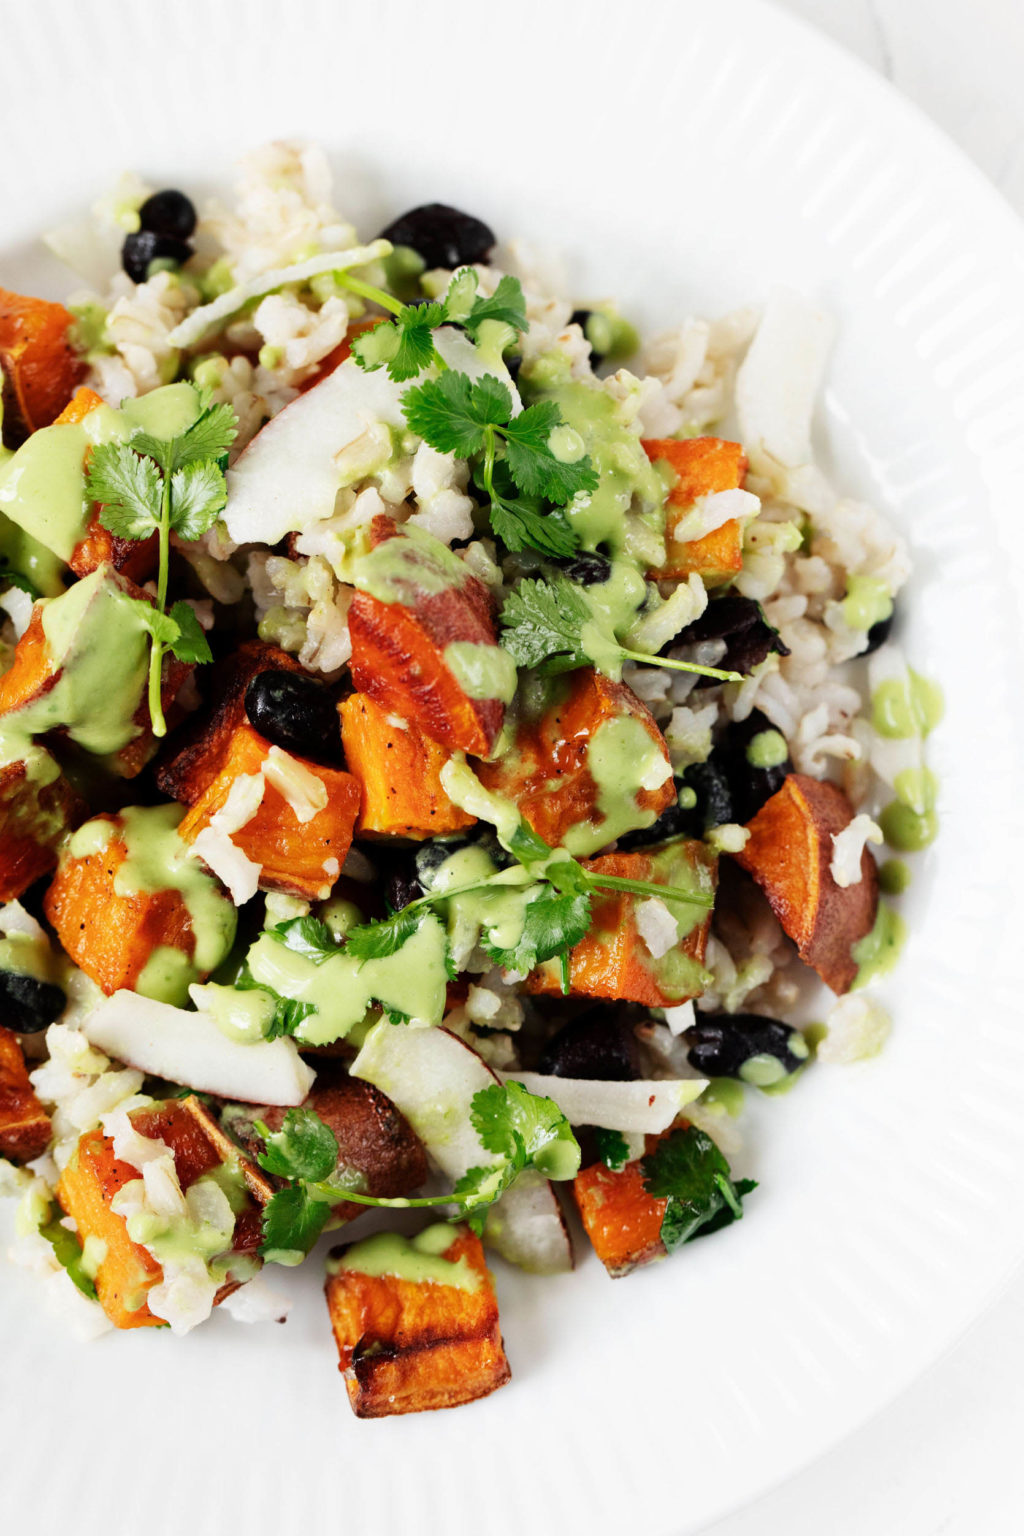 An overhead image of sweet potatoes, brown rice, and black beans. All of the ingredients are mixed with coconut chips and topped with a bright green dressing.